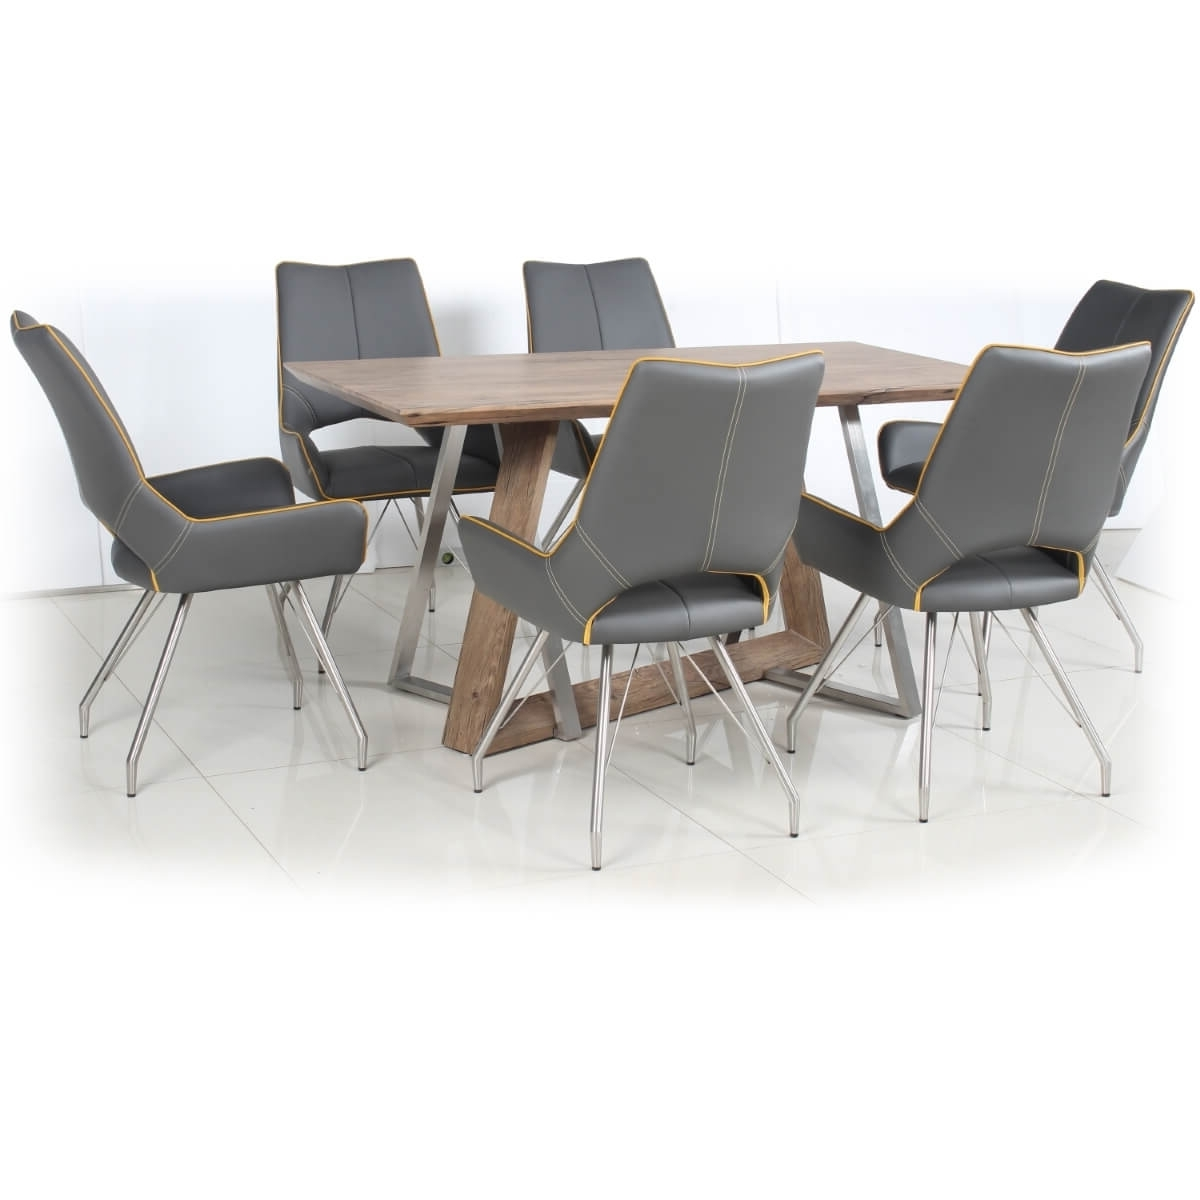 Grey Dining Tables For Recent Dining Set – Industrial Style Wood Dining Table And 6 Grey Dining (View 8 of 25)